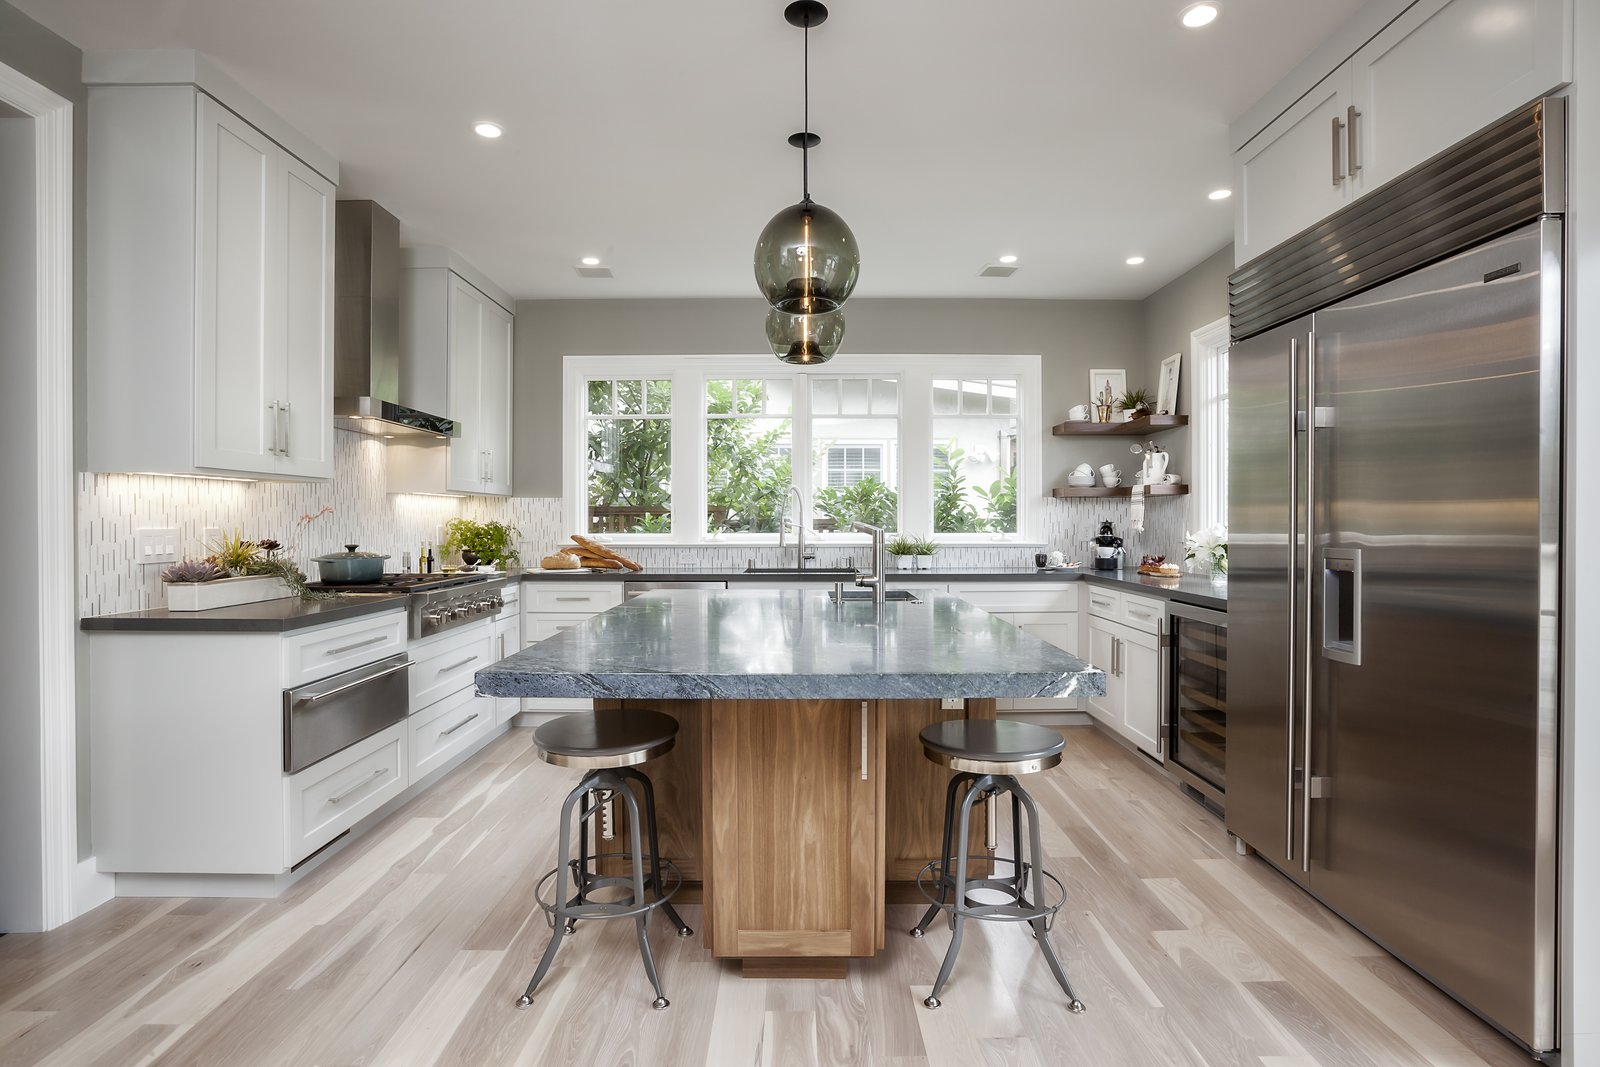 Photo 4 of 5 in Contemporary Kitchen Island Pendants Spotted in California Home